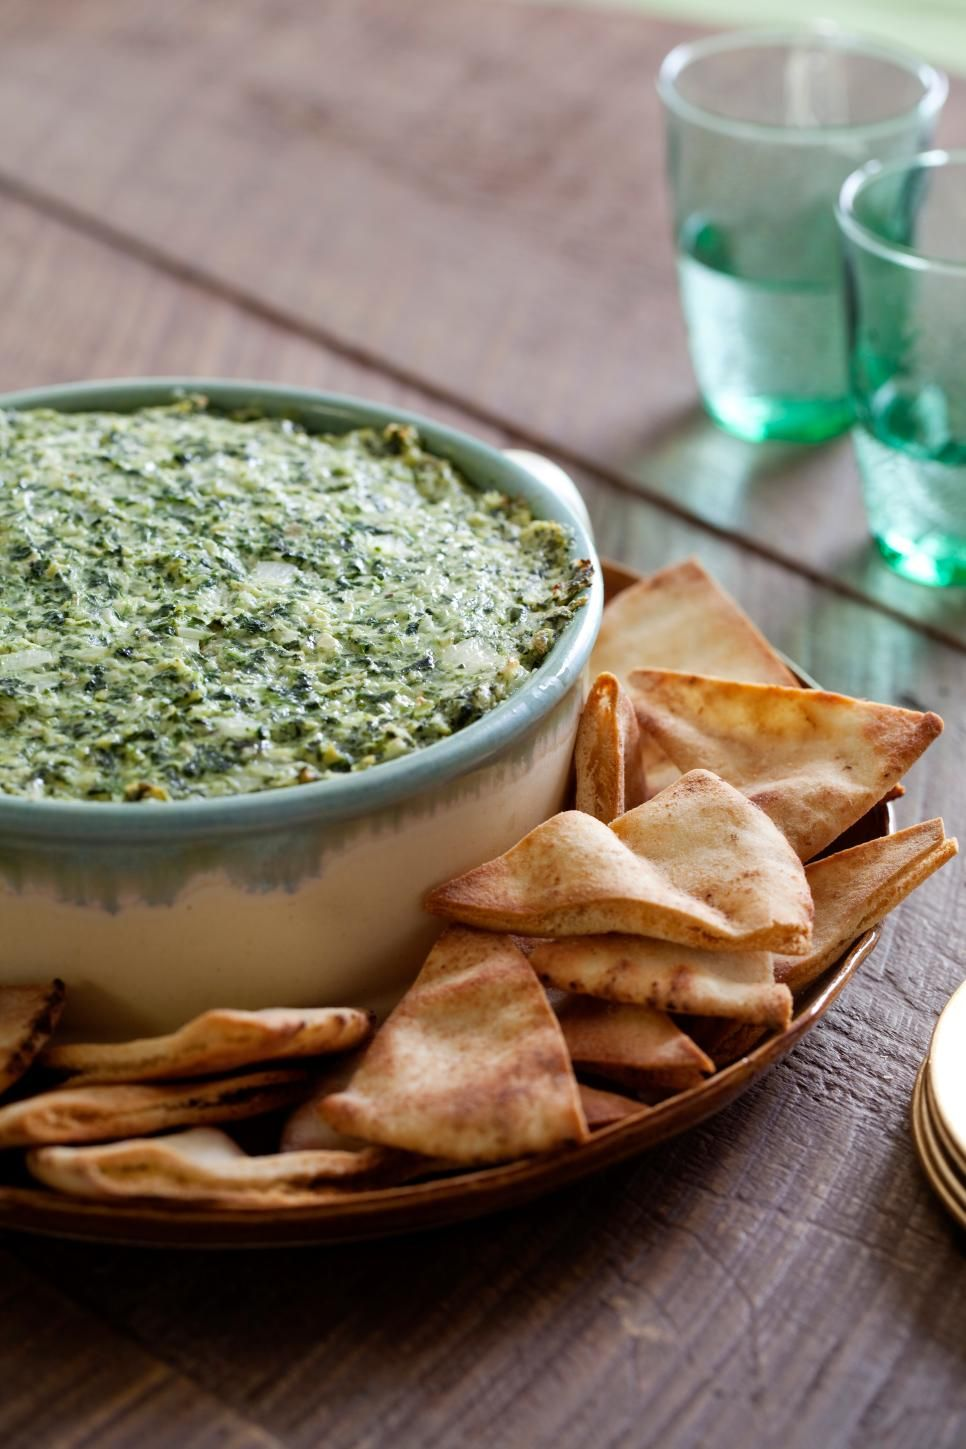 Healthy appetizer recipes food network meals foods and recipes entertain the smart way with these healthy appetizer recipes from food network forumfinder Choice Image